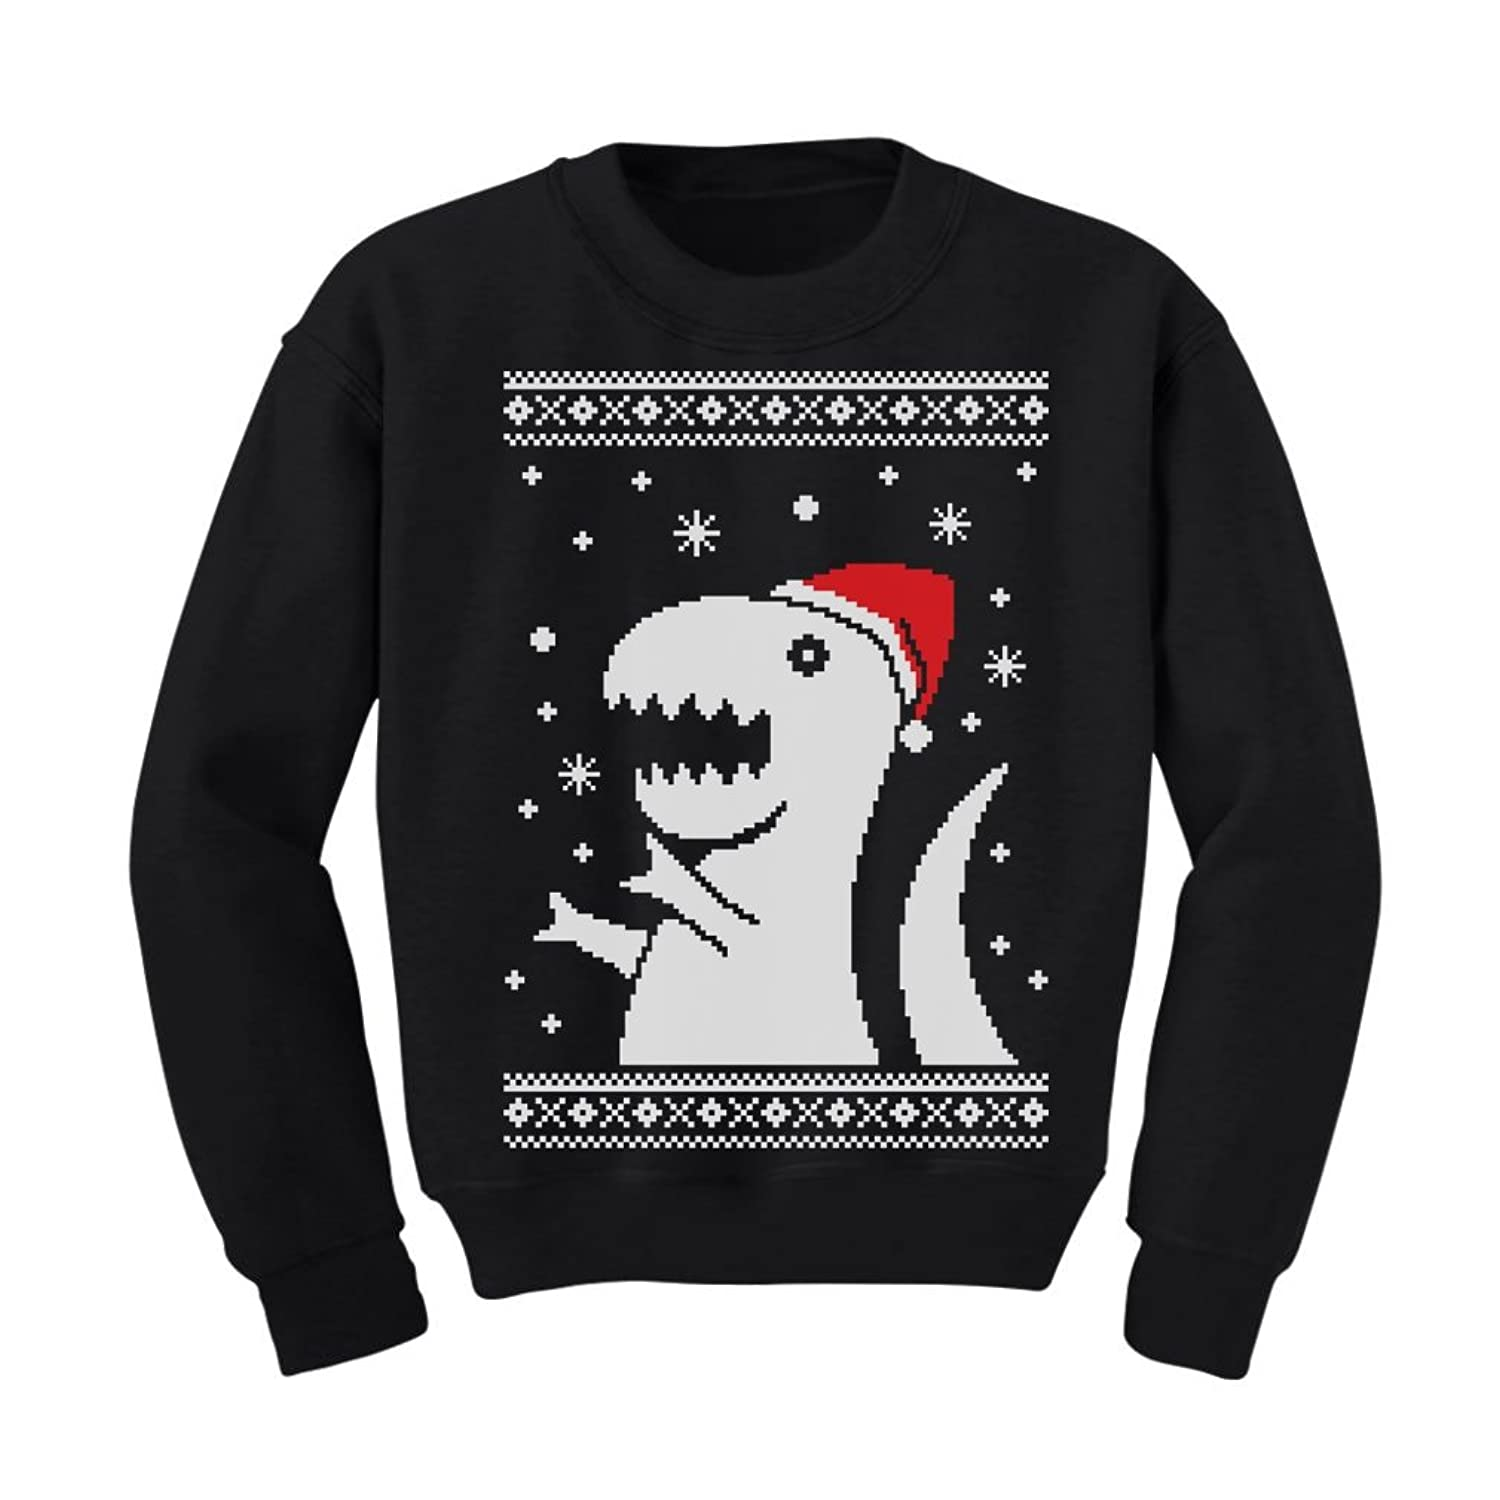 Amazon.com: Tstars Big Trex Santa Ugly Christmas Sweater - children ...